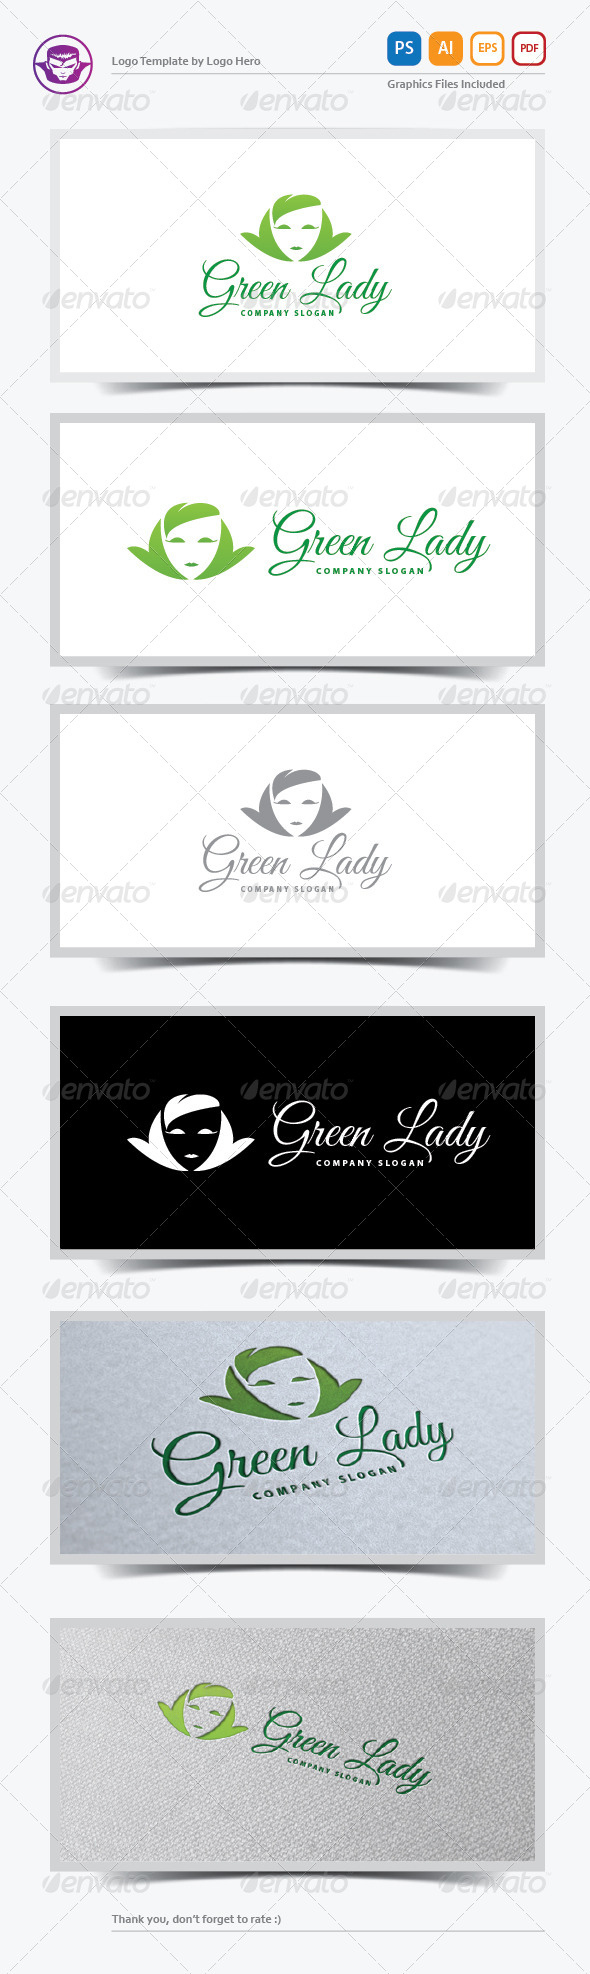 GraphicRiver Green Lady Logo Template 5798244